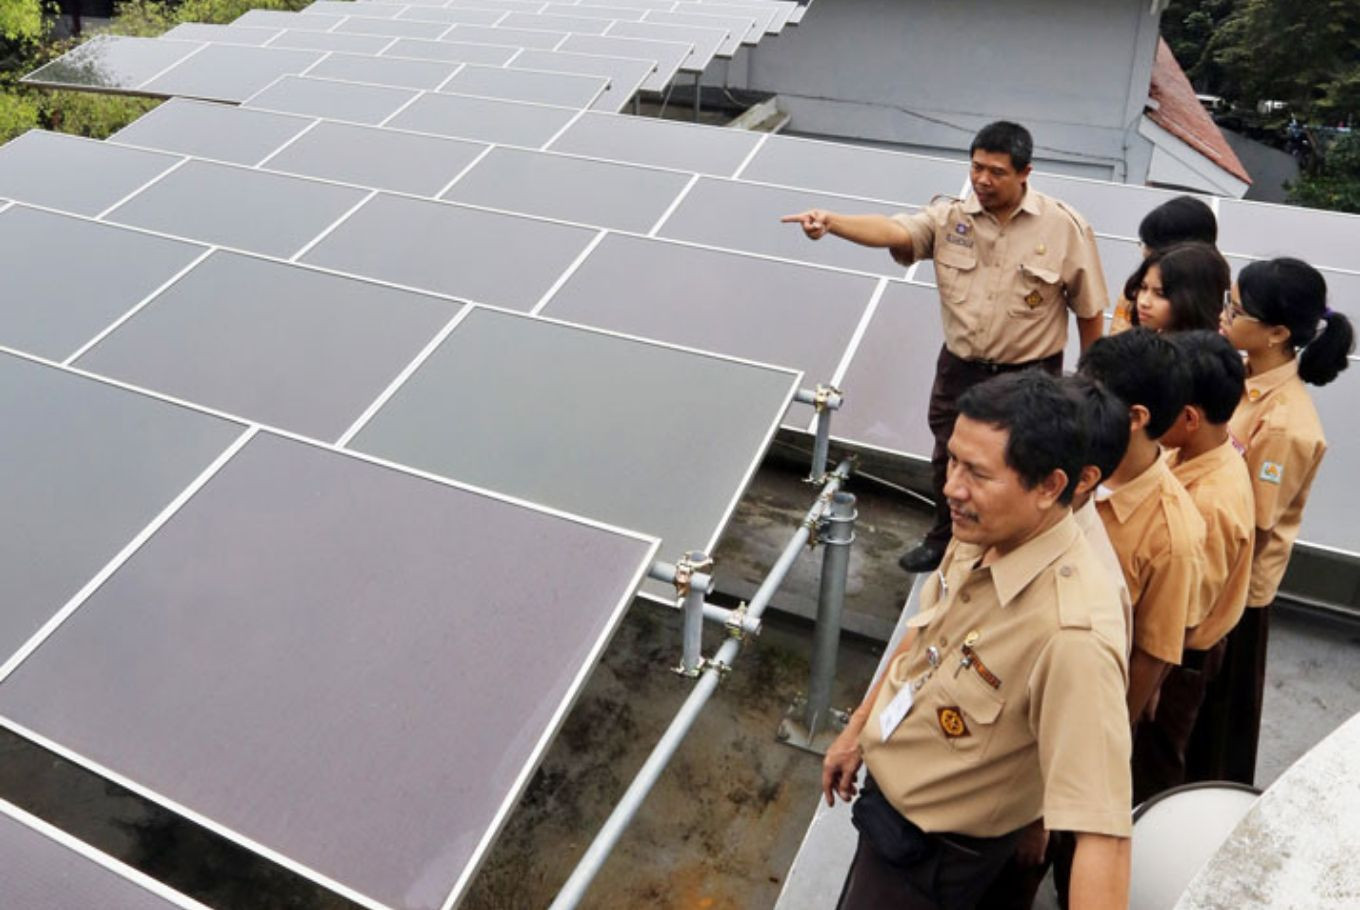 Southeast Asia's energy transition needs to accelerate as COVID-19 highlights gaps in resilience